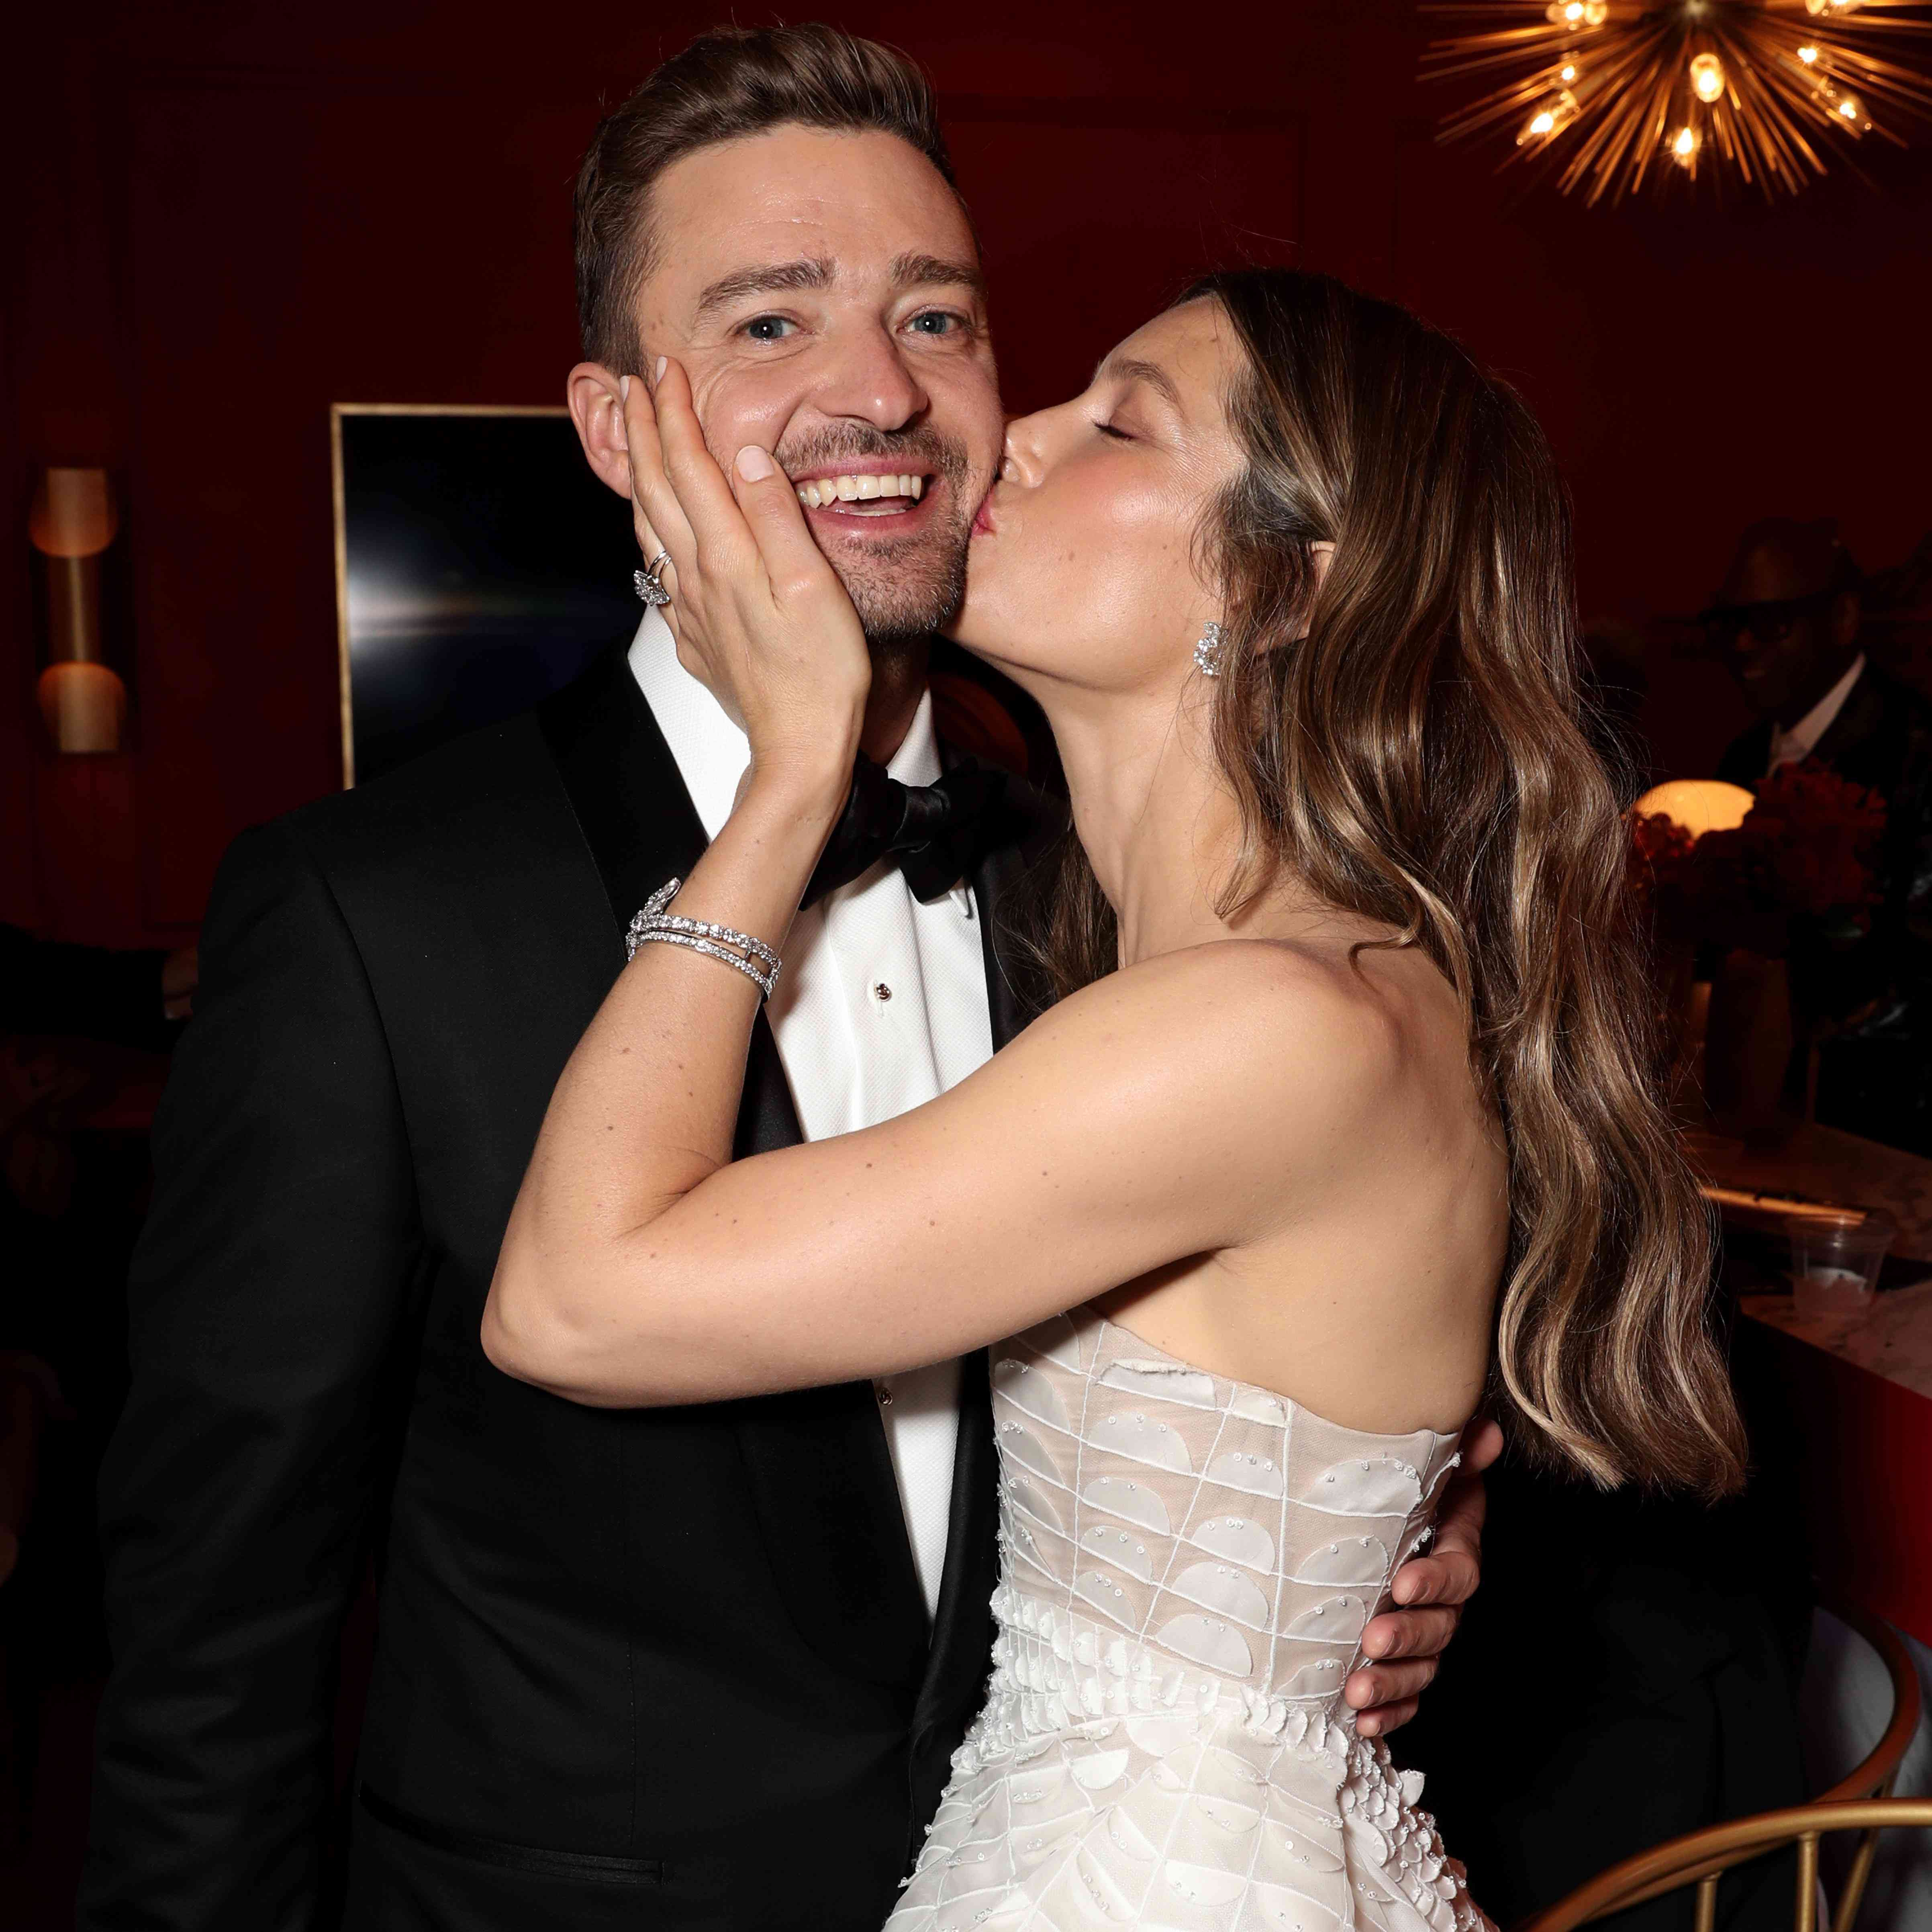 16 Designers Celebrities Turn To For Their Weddings